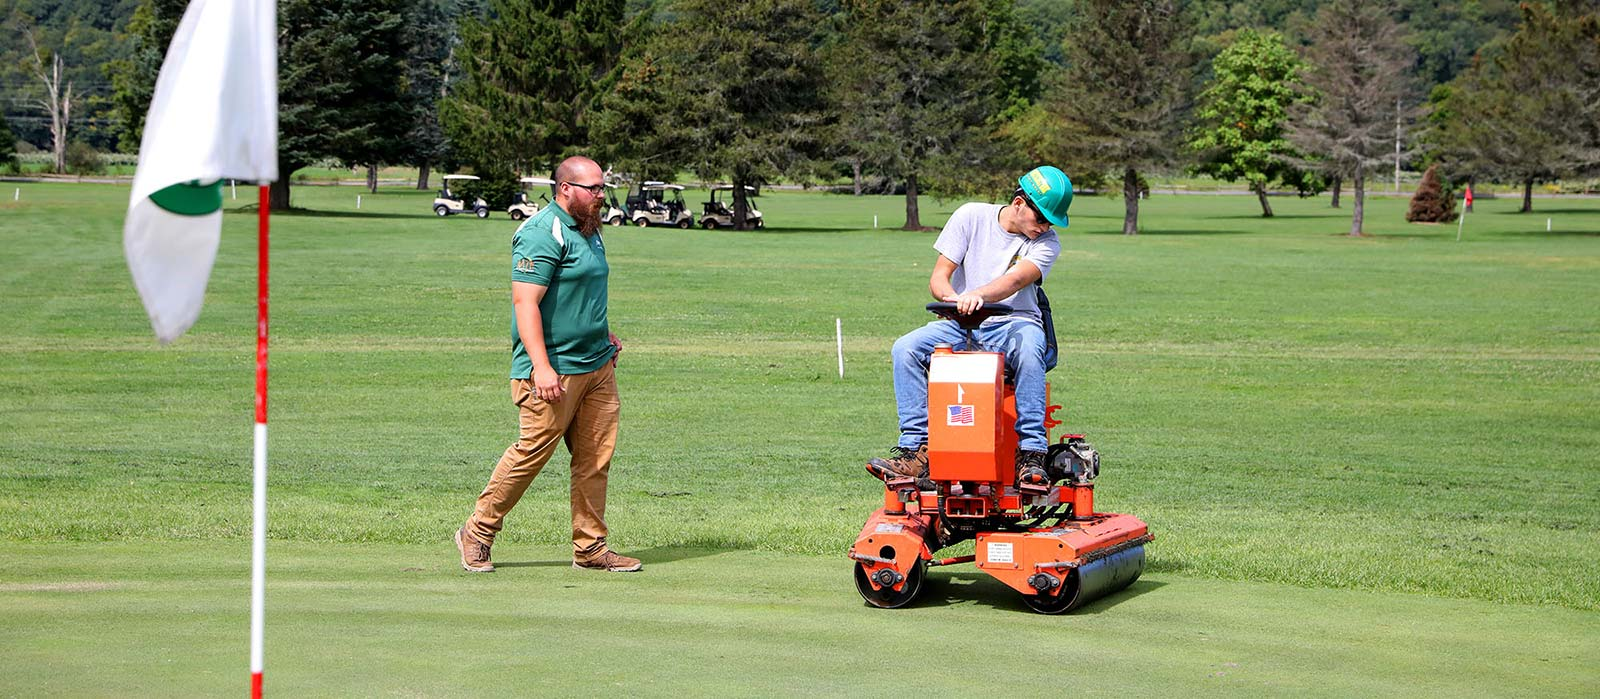 Professor teaching a student how to groom a golf green